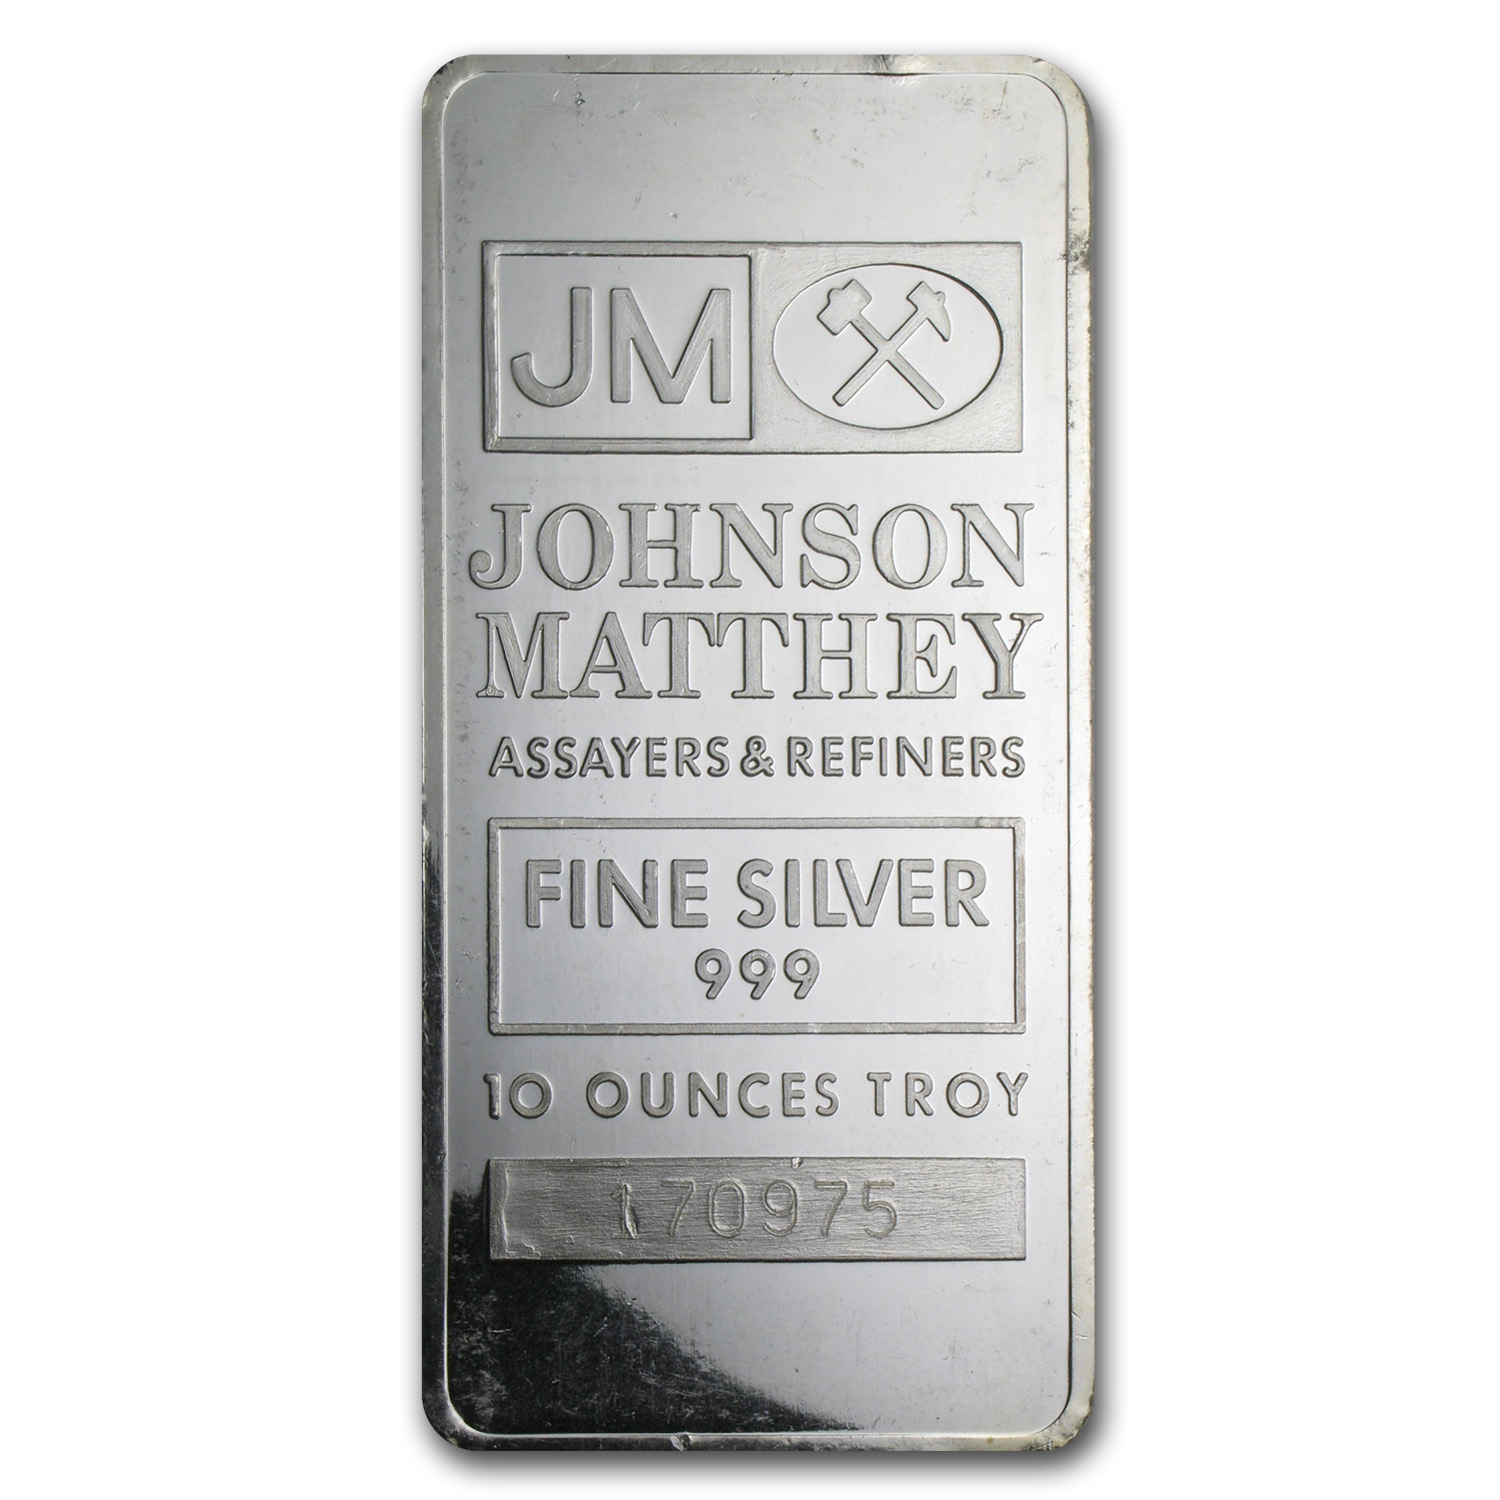 10 oz Silver Bars - Johnson Matthey (Secondary Market)